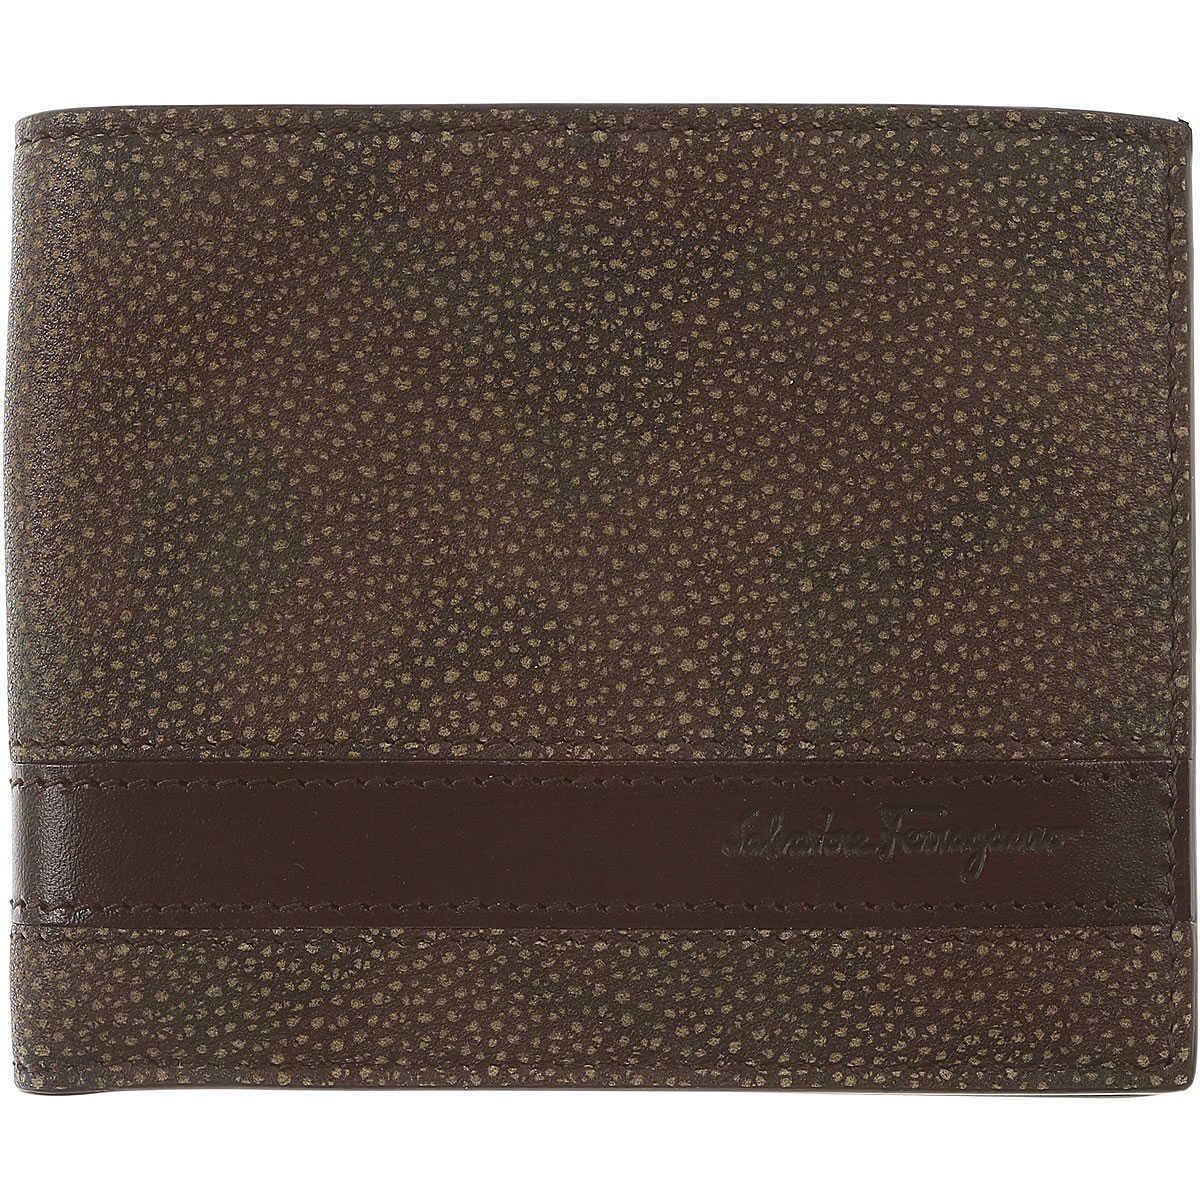 Salvatore Ferragamo Mens Wallets On Sale in Outlet Brown UK - GOOFASH